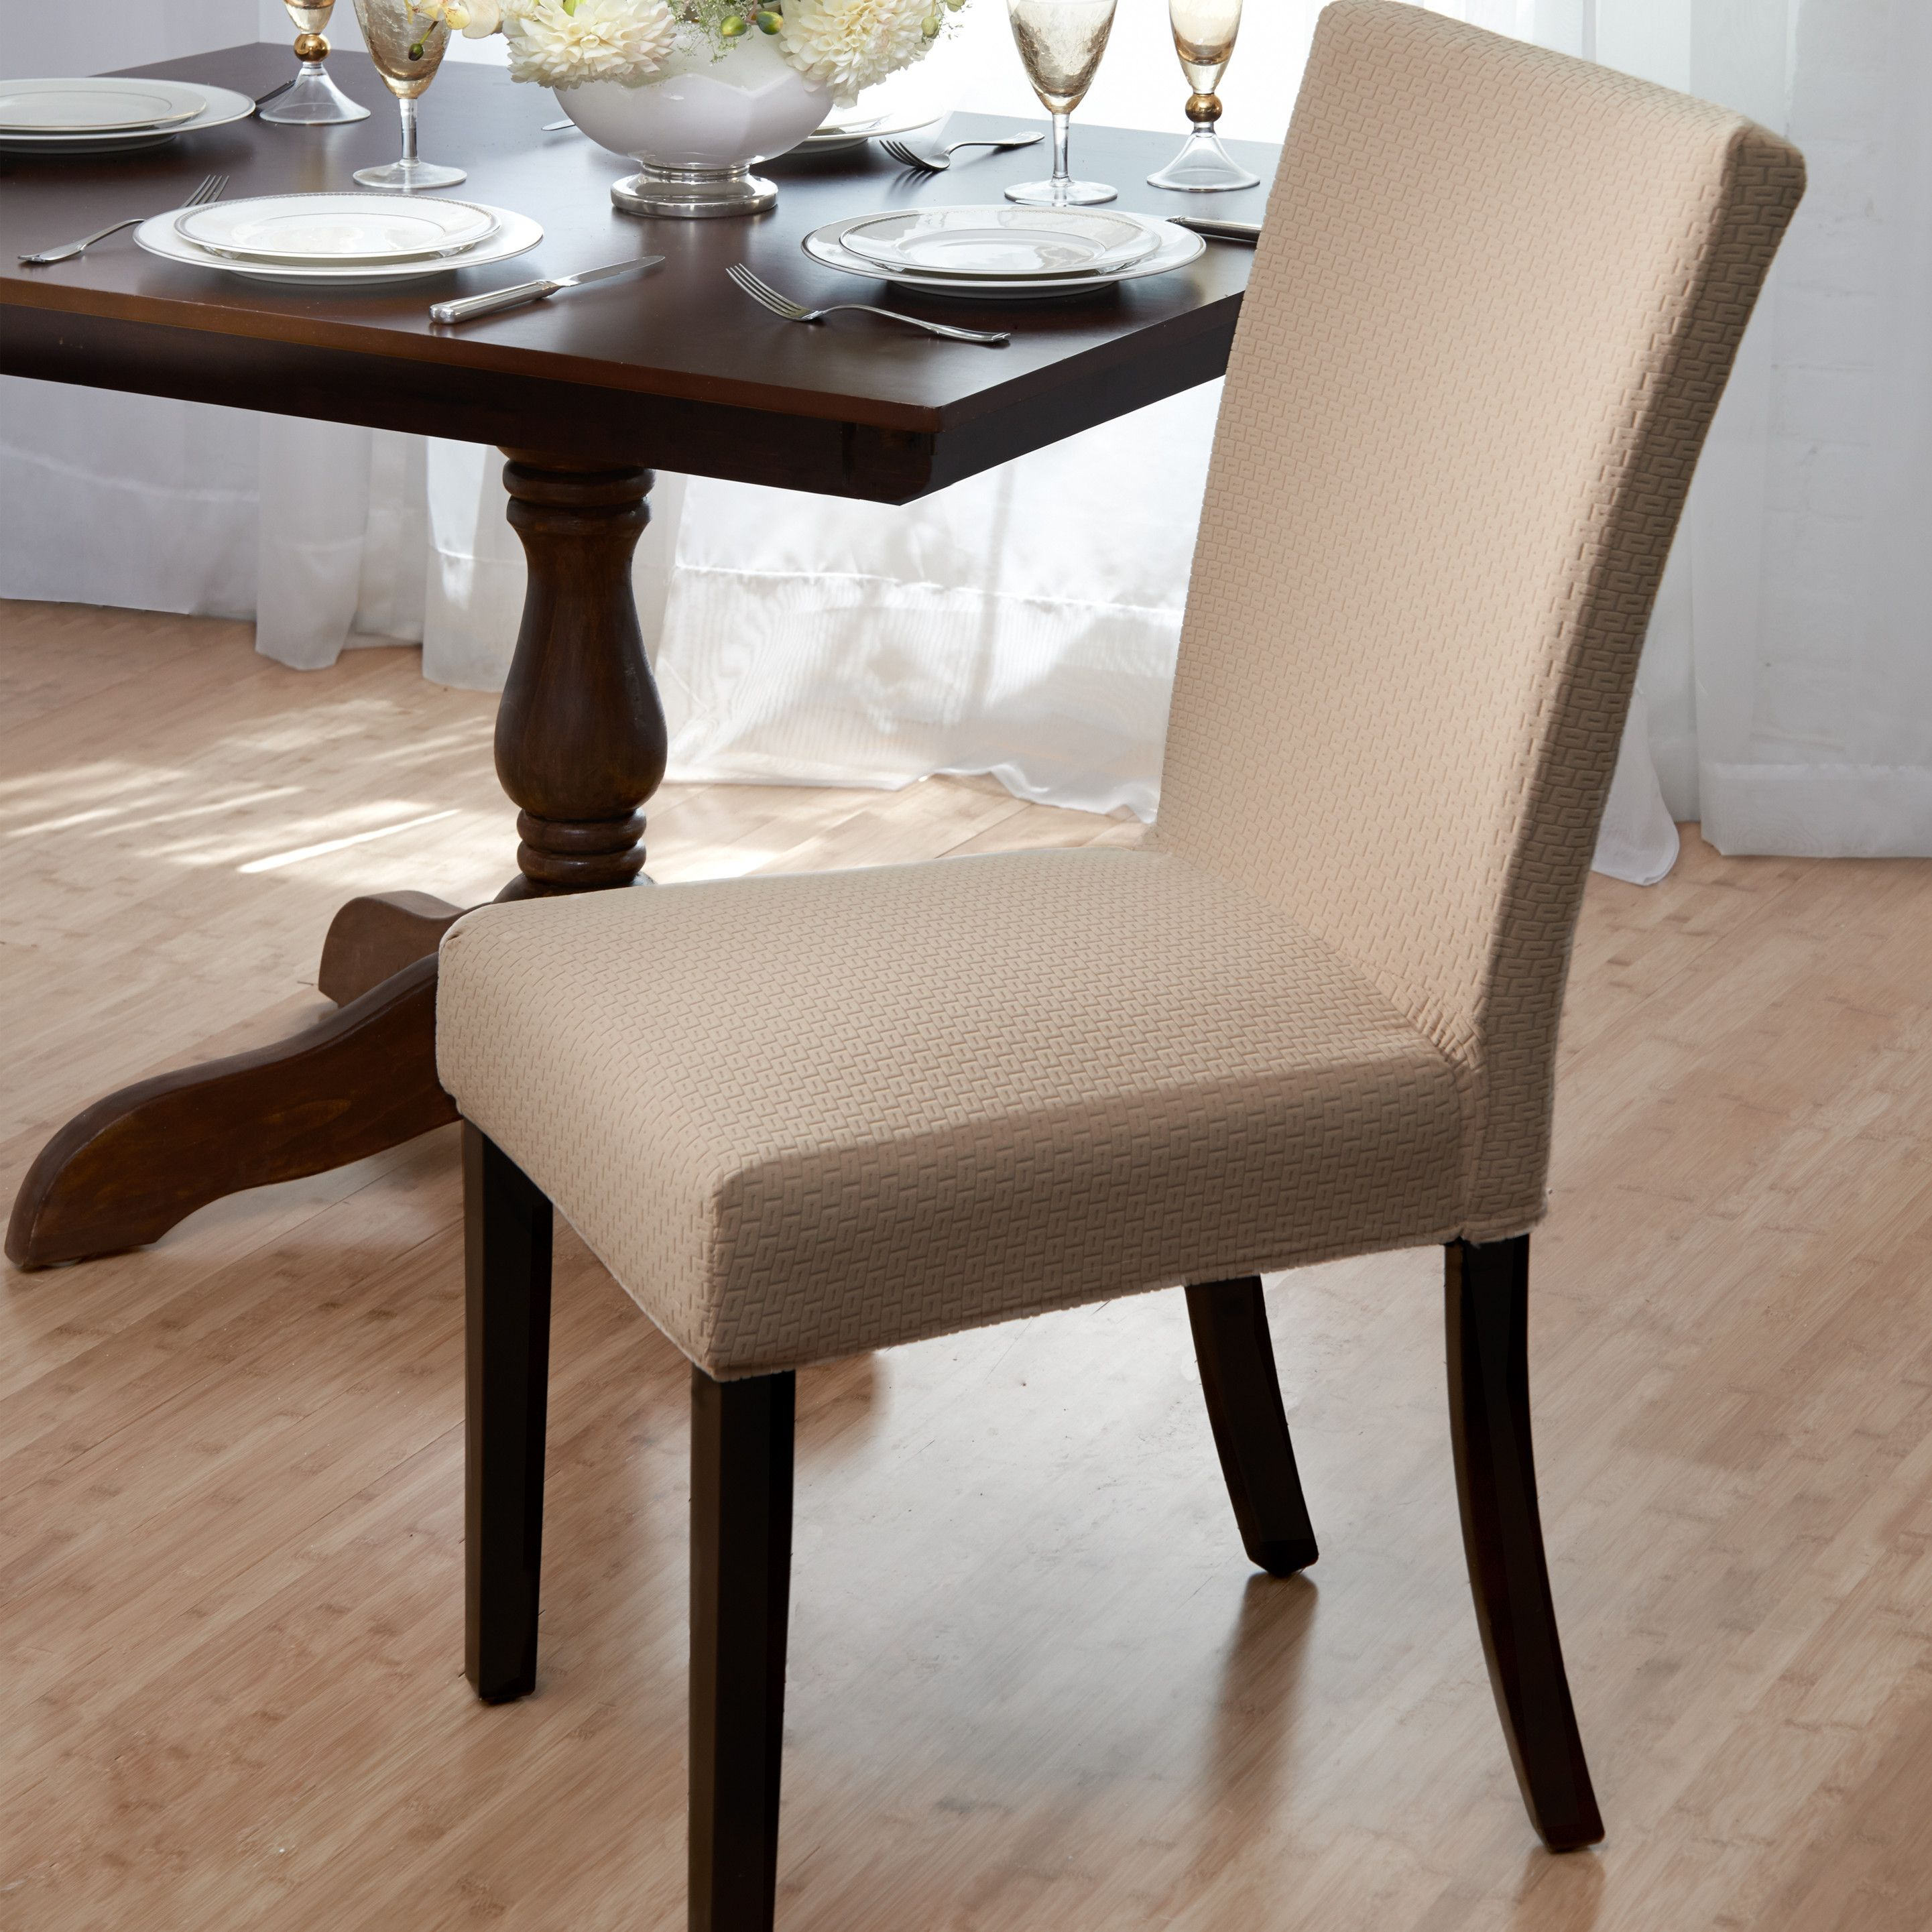 Room Queen Anne Dining Chair Slipcovers